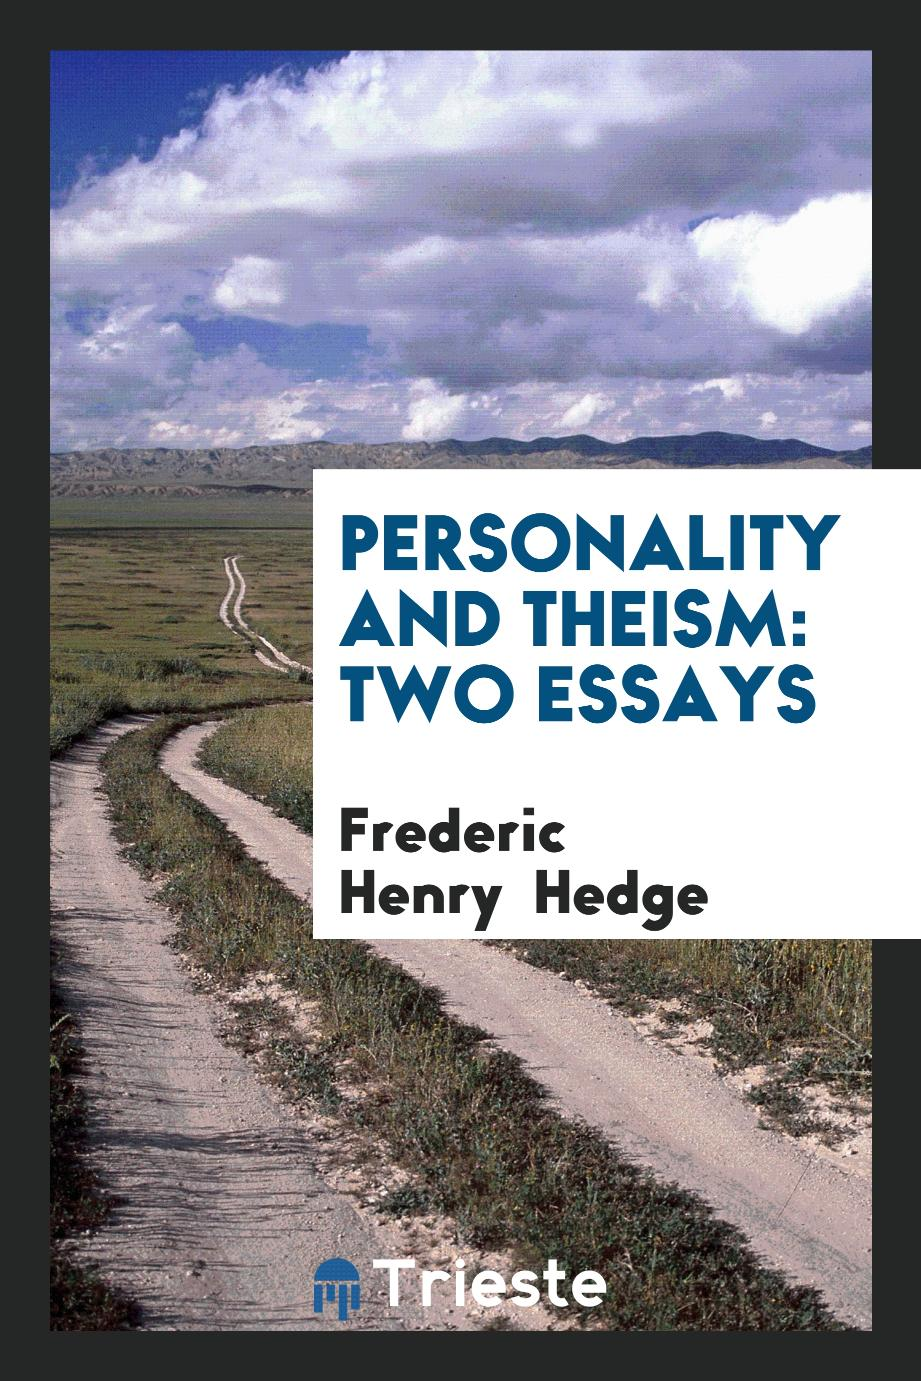 Personality and Theism: Two Essays